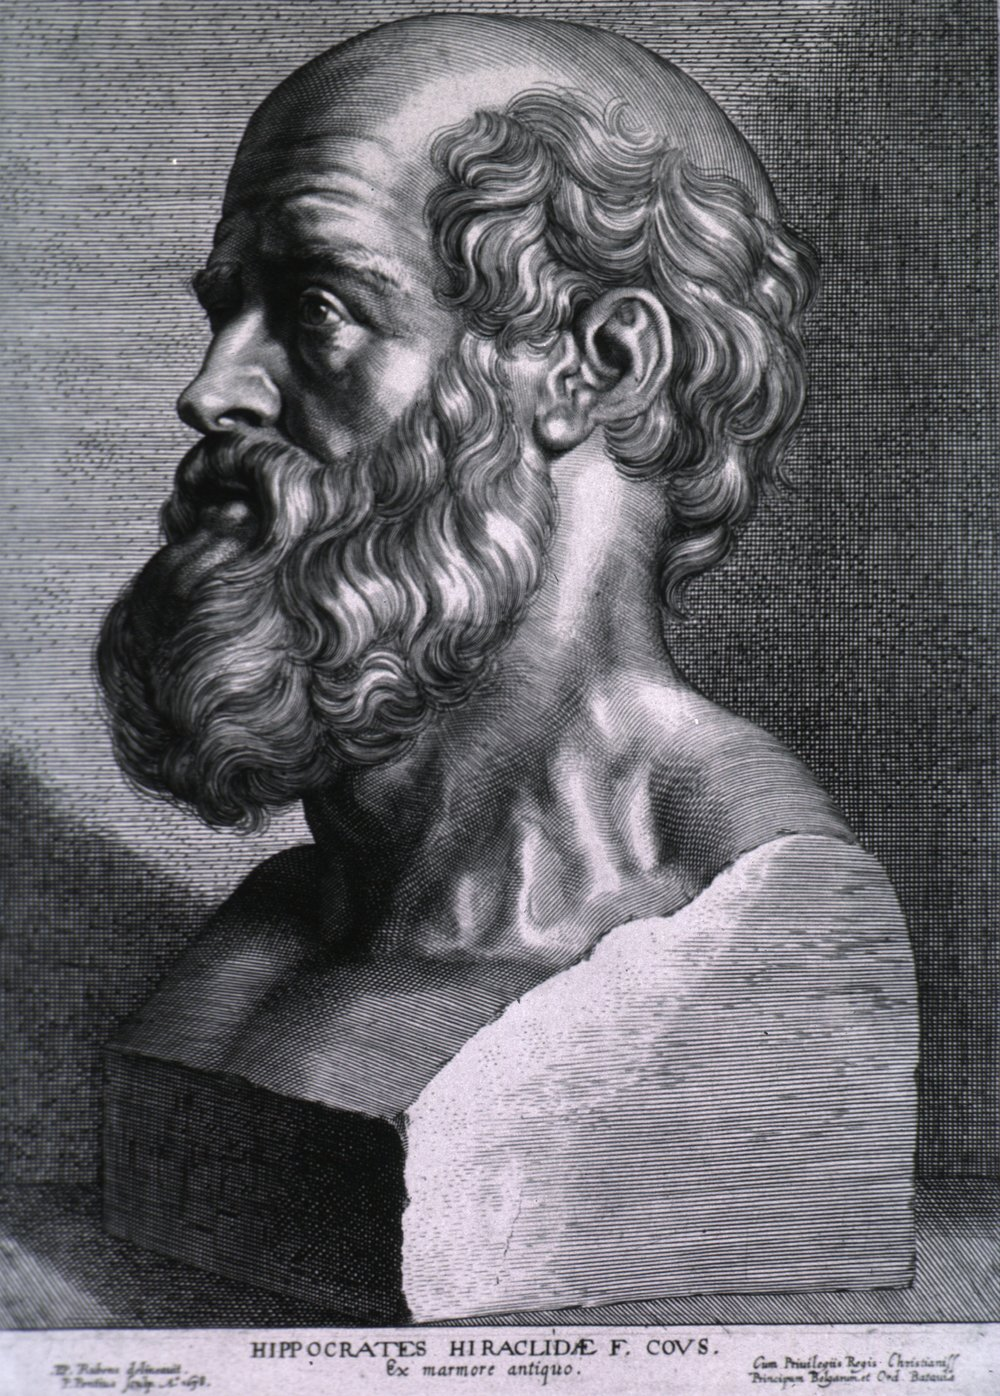 Engraving of Hippocrates by Peter Paul Rubens